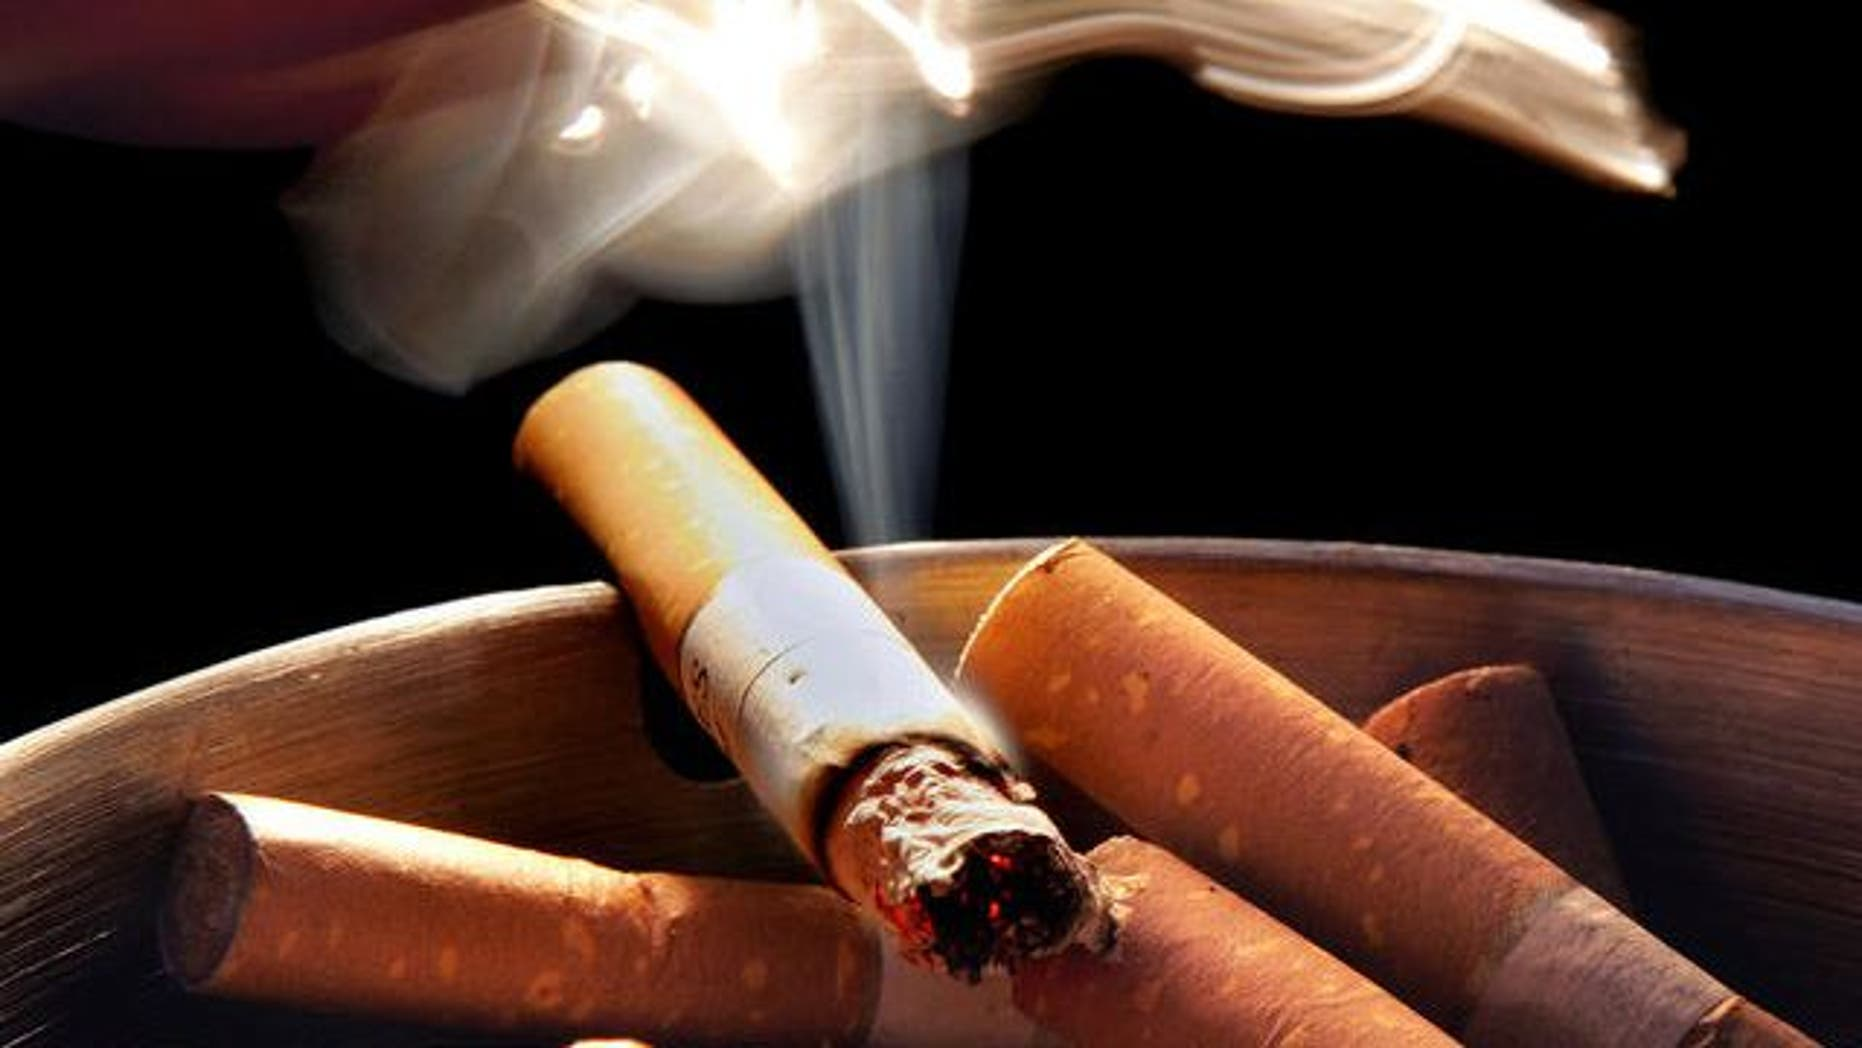 Forum on this topic: 10 Ways to Outsmart Cigarette Cravings, 10-ways-to-outsmart-cigarette-cravings/